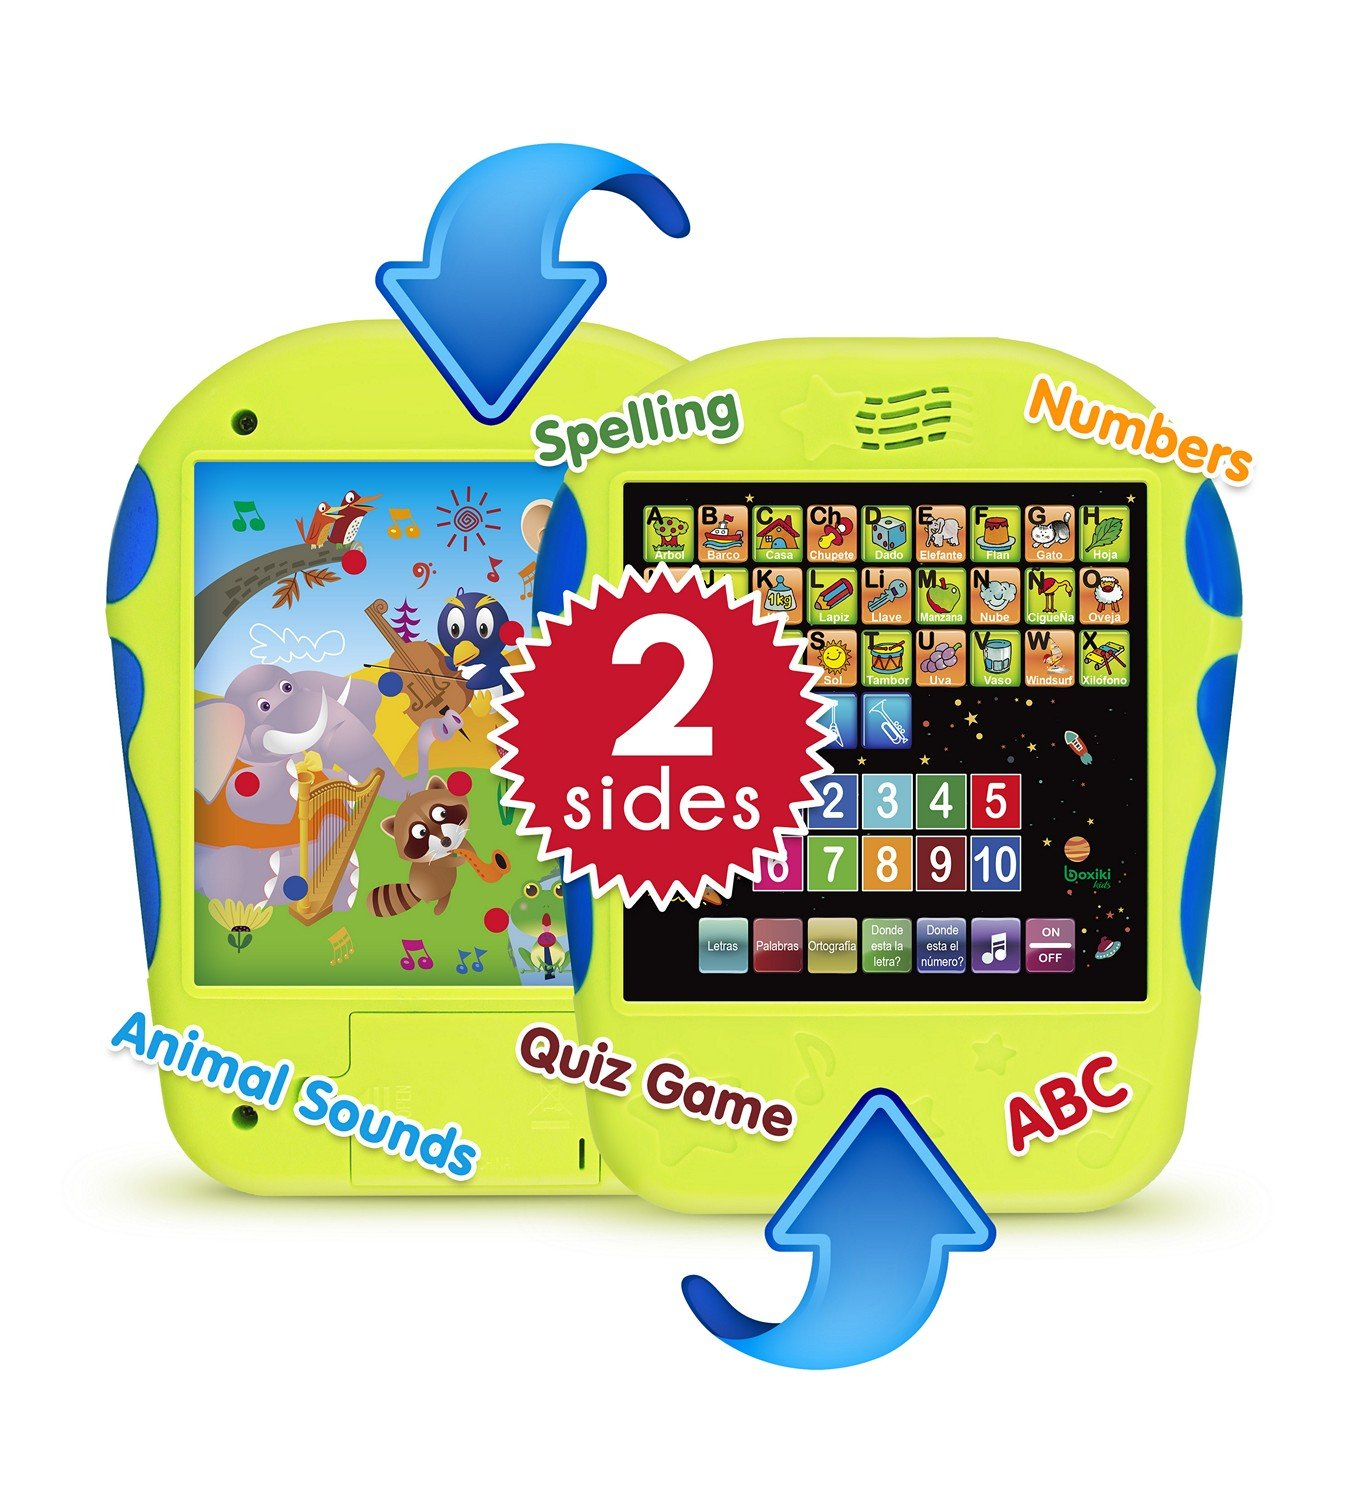 "Spanish Learning Tablet Educational Toy for Kids. Touch and Learn Spanish Alphabet Toy for Toddlers - Learn Spanish Numbers, ABC, Spelling, ""Where ..."